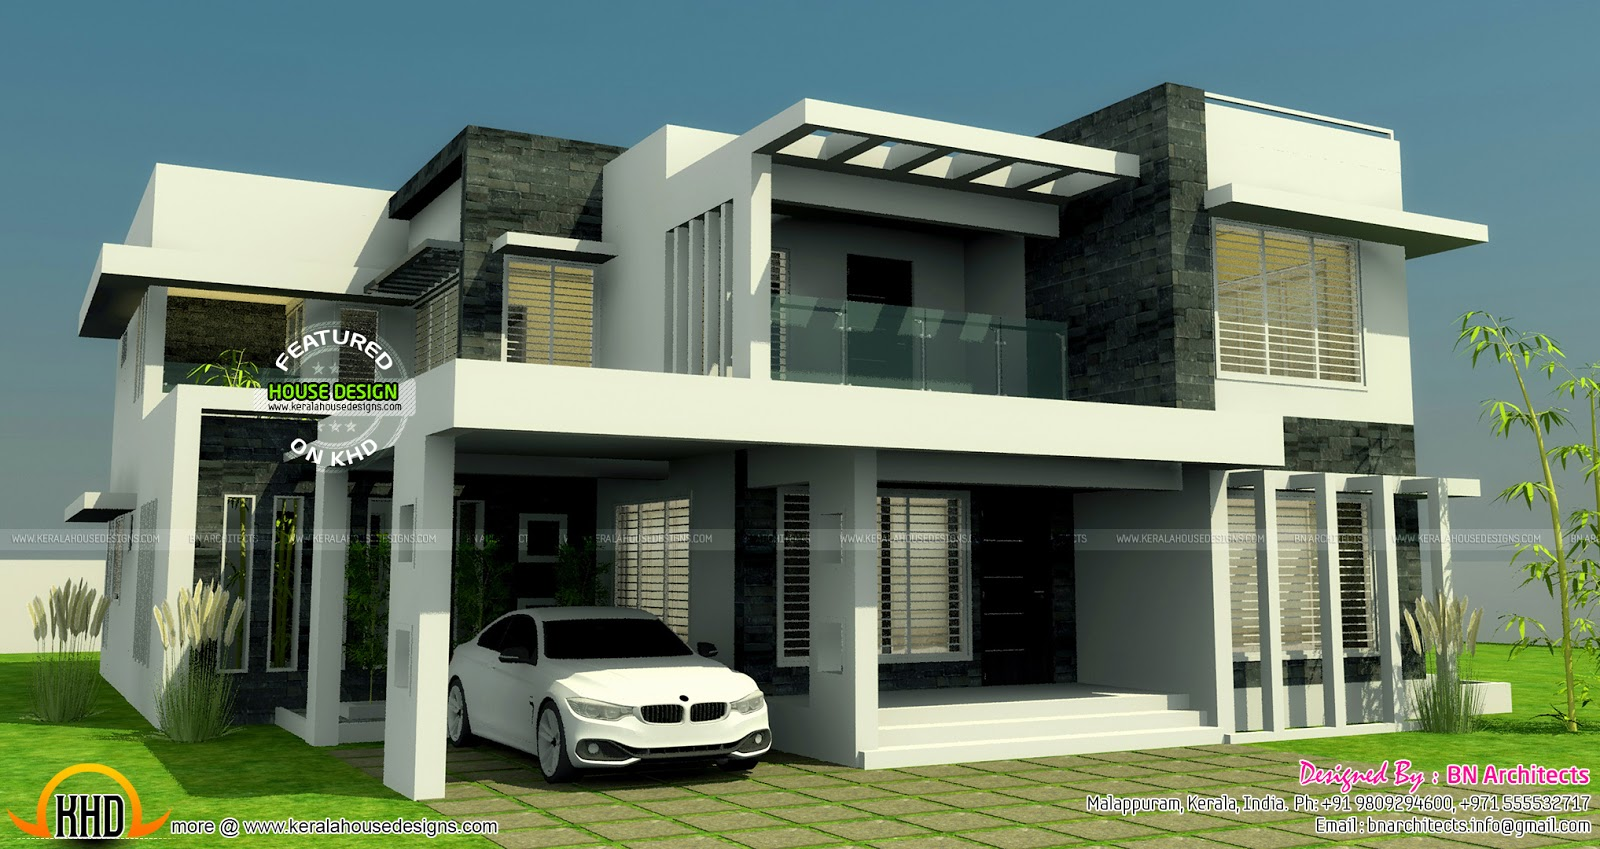 All In One House Elevation Floor Plan And Interiors Kerala Home Design And Floor Plans